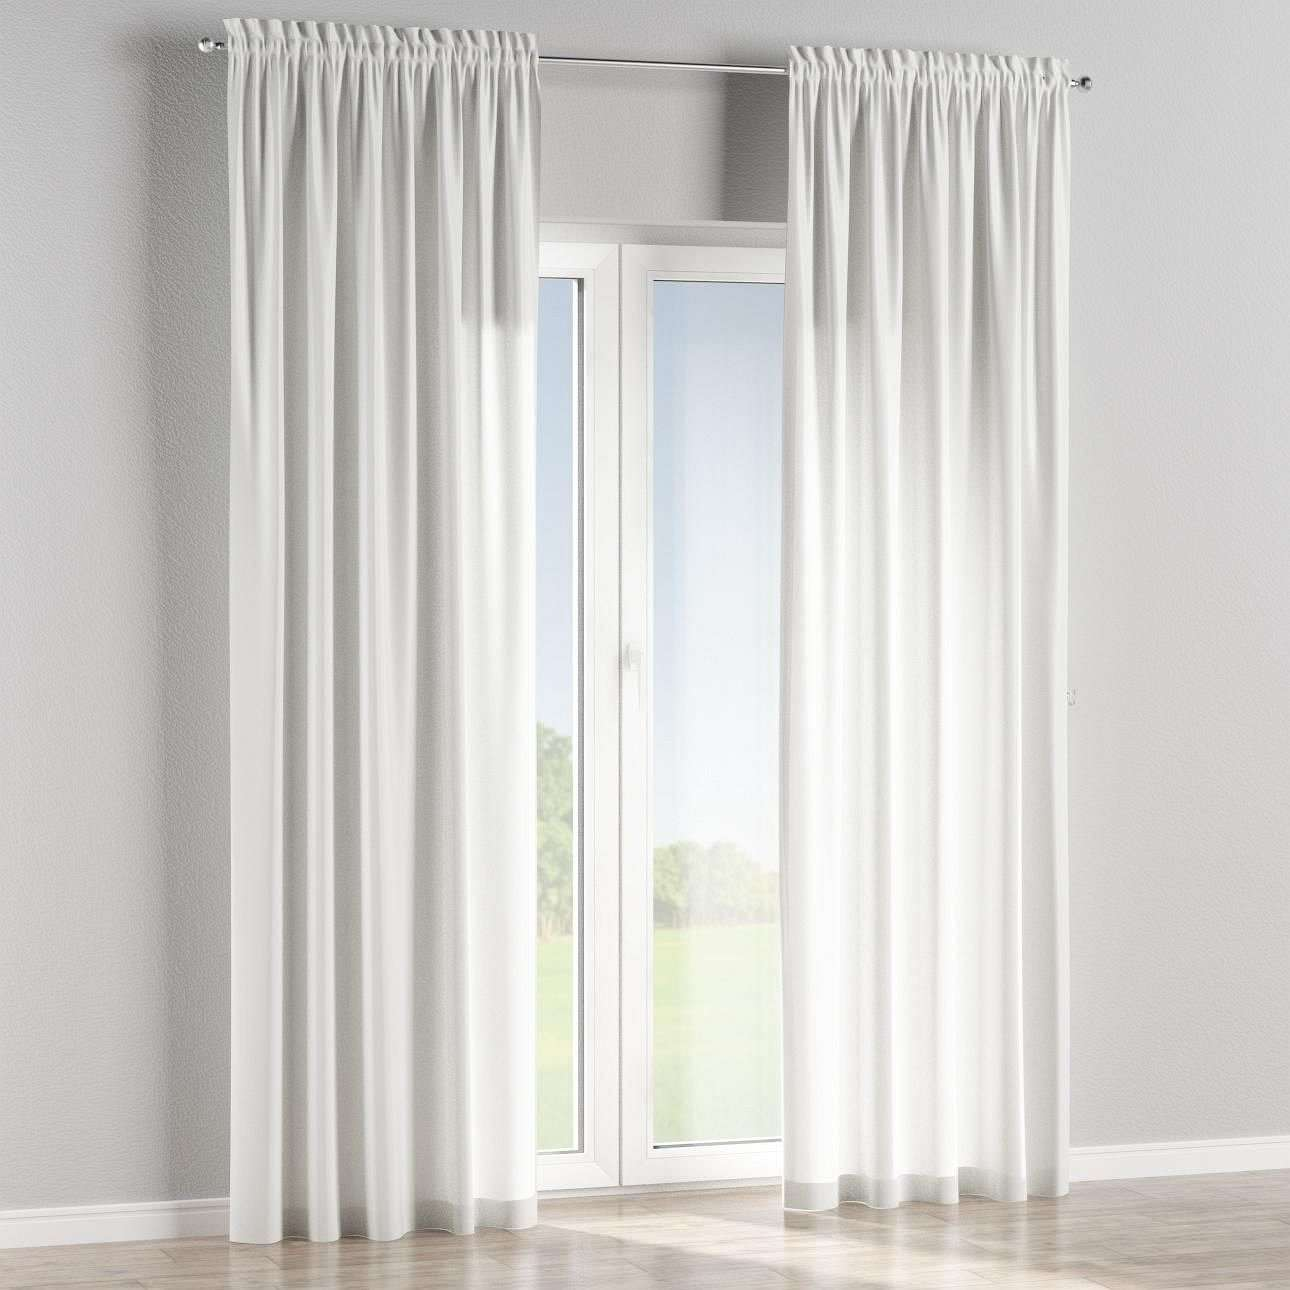 Slot and frill curtains in collection Rustica, fabric: 138-25